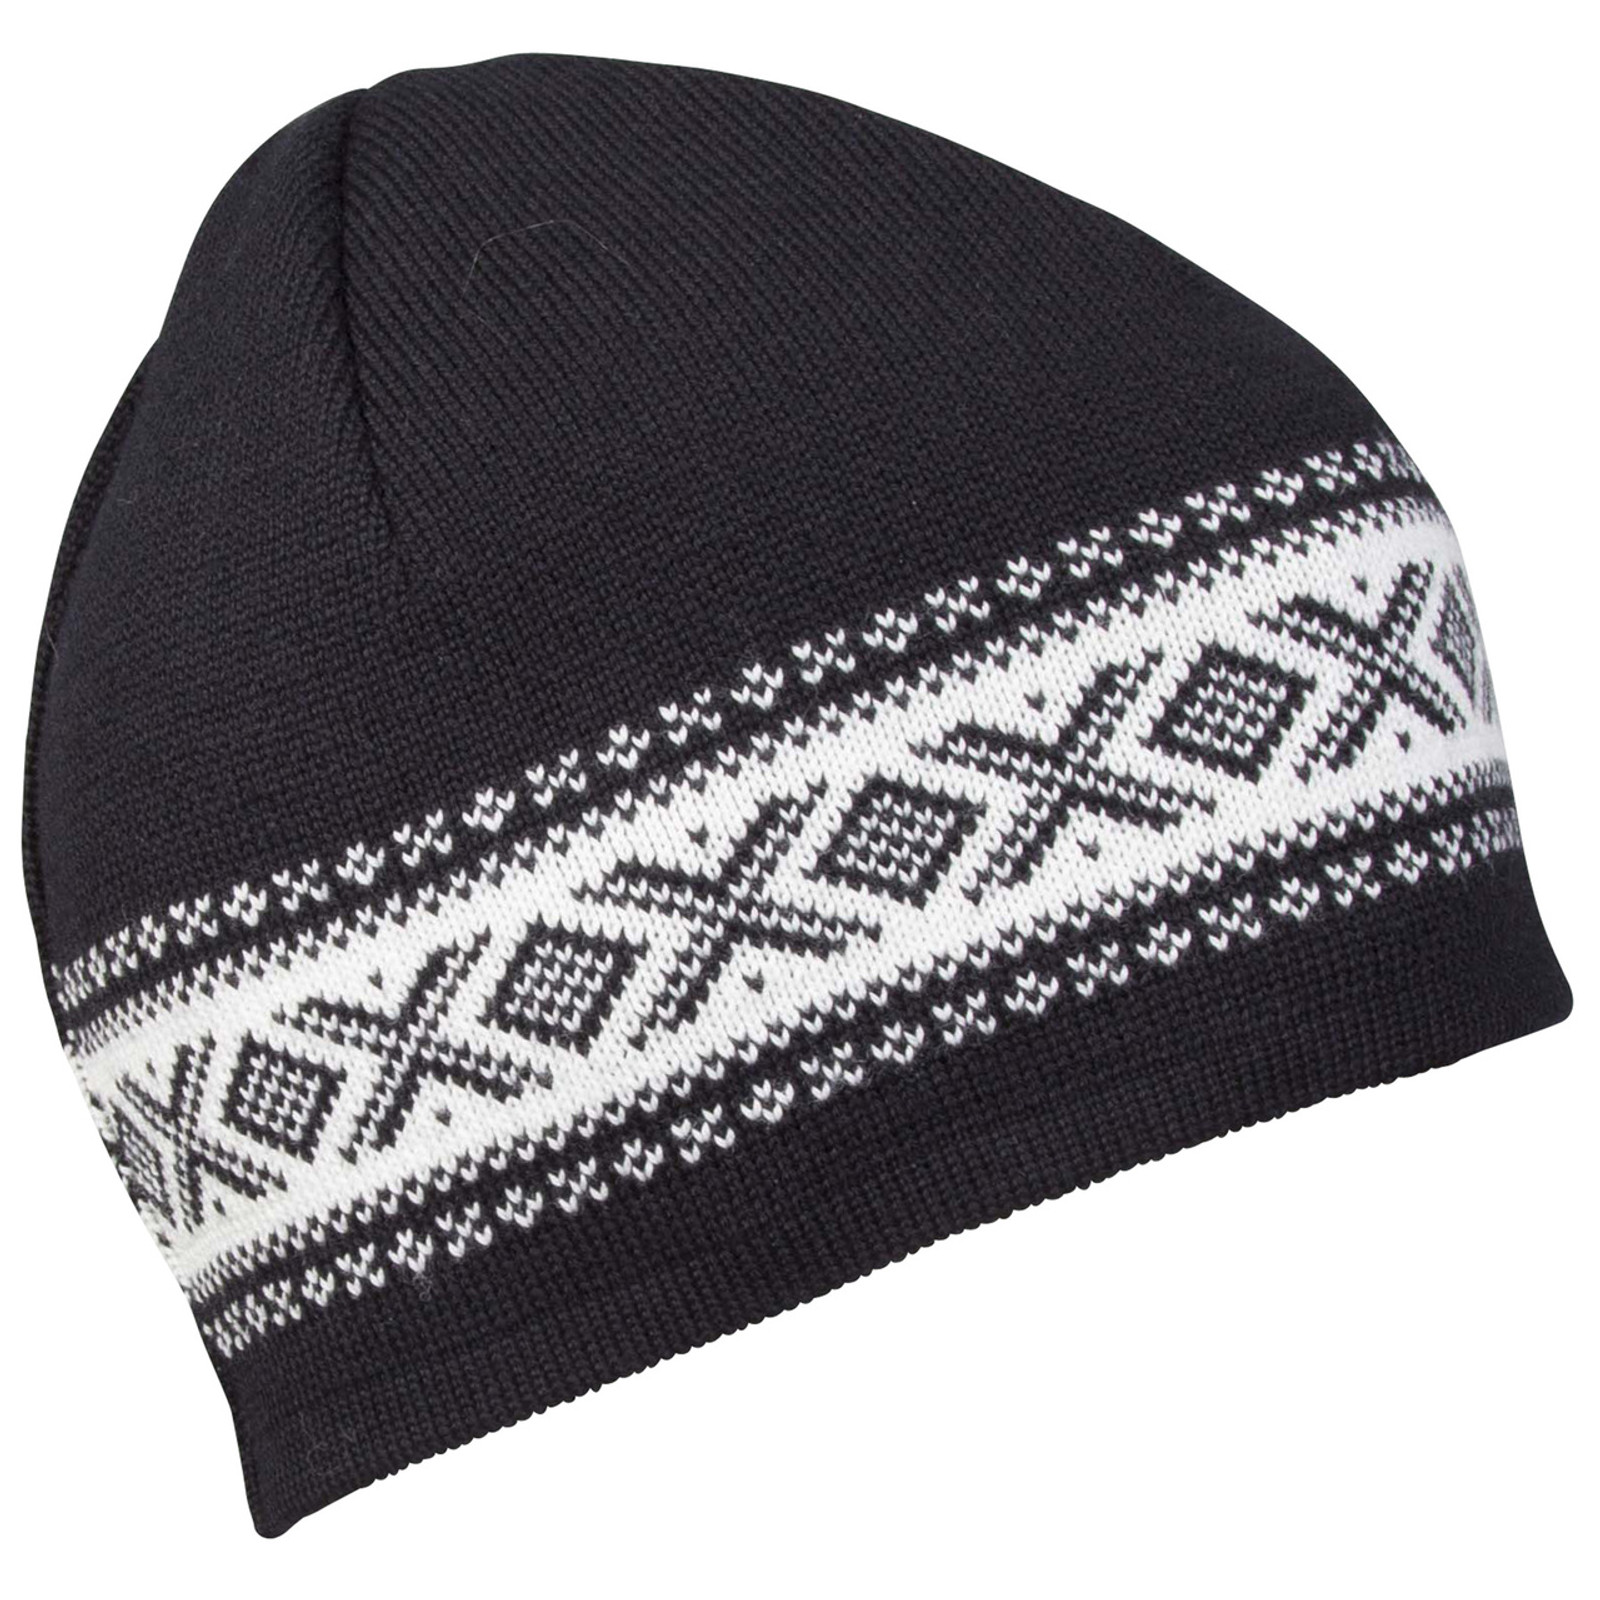 Dale of Norway, Cortina Merino Hat in Black/Off White, 48211-F